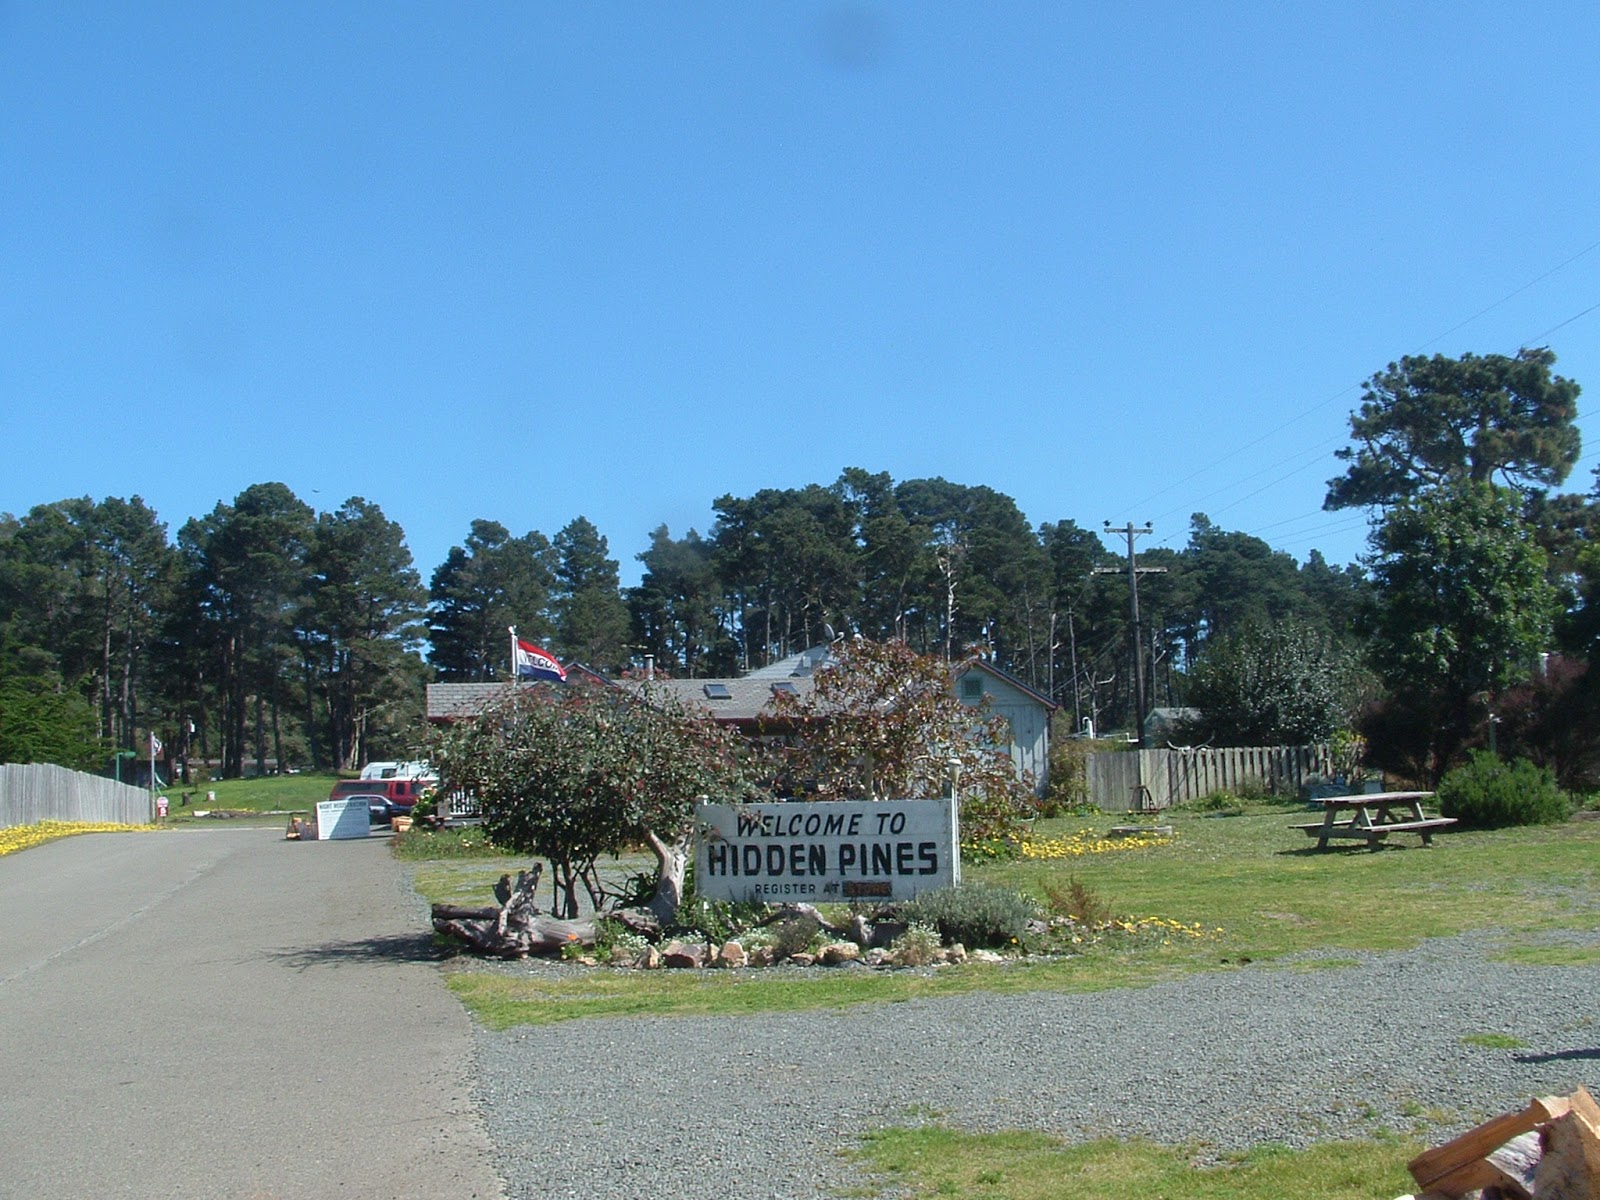 North From Mendocino 78 Miles Or Just 1 2 Mile South Fort Bragg On The Pacific Coast Highway Come To Hidden Pines RV Park Campground